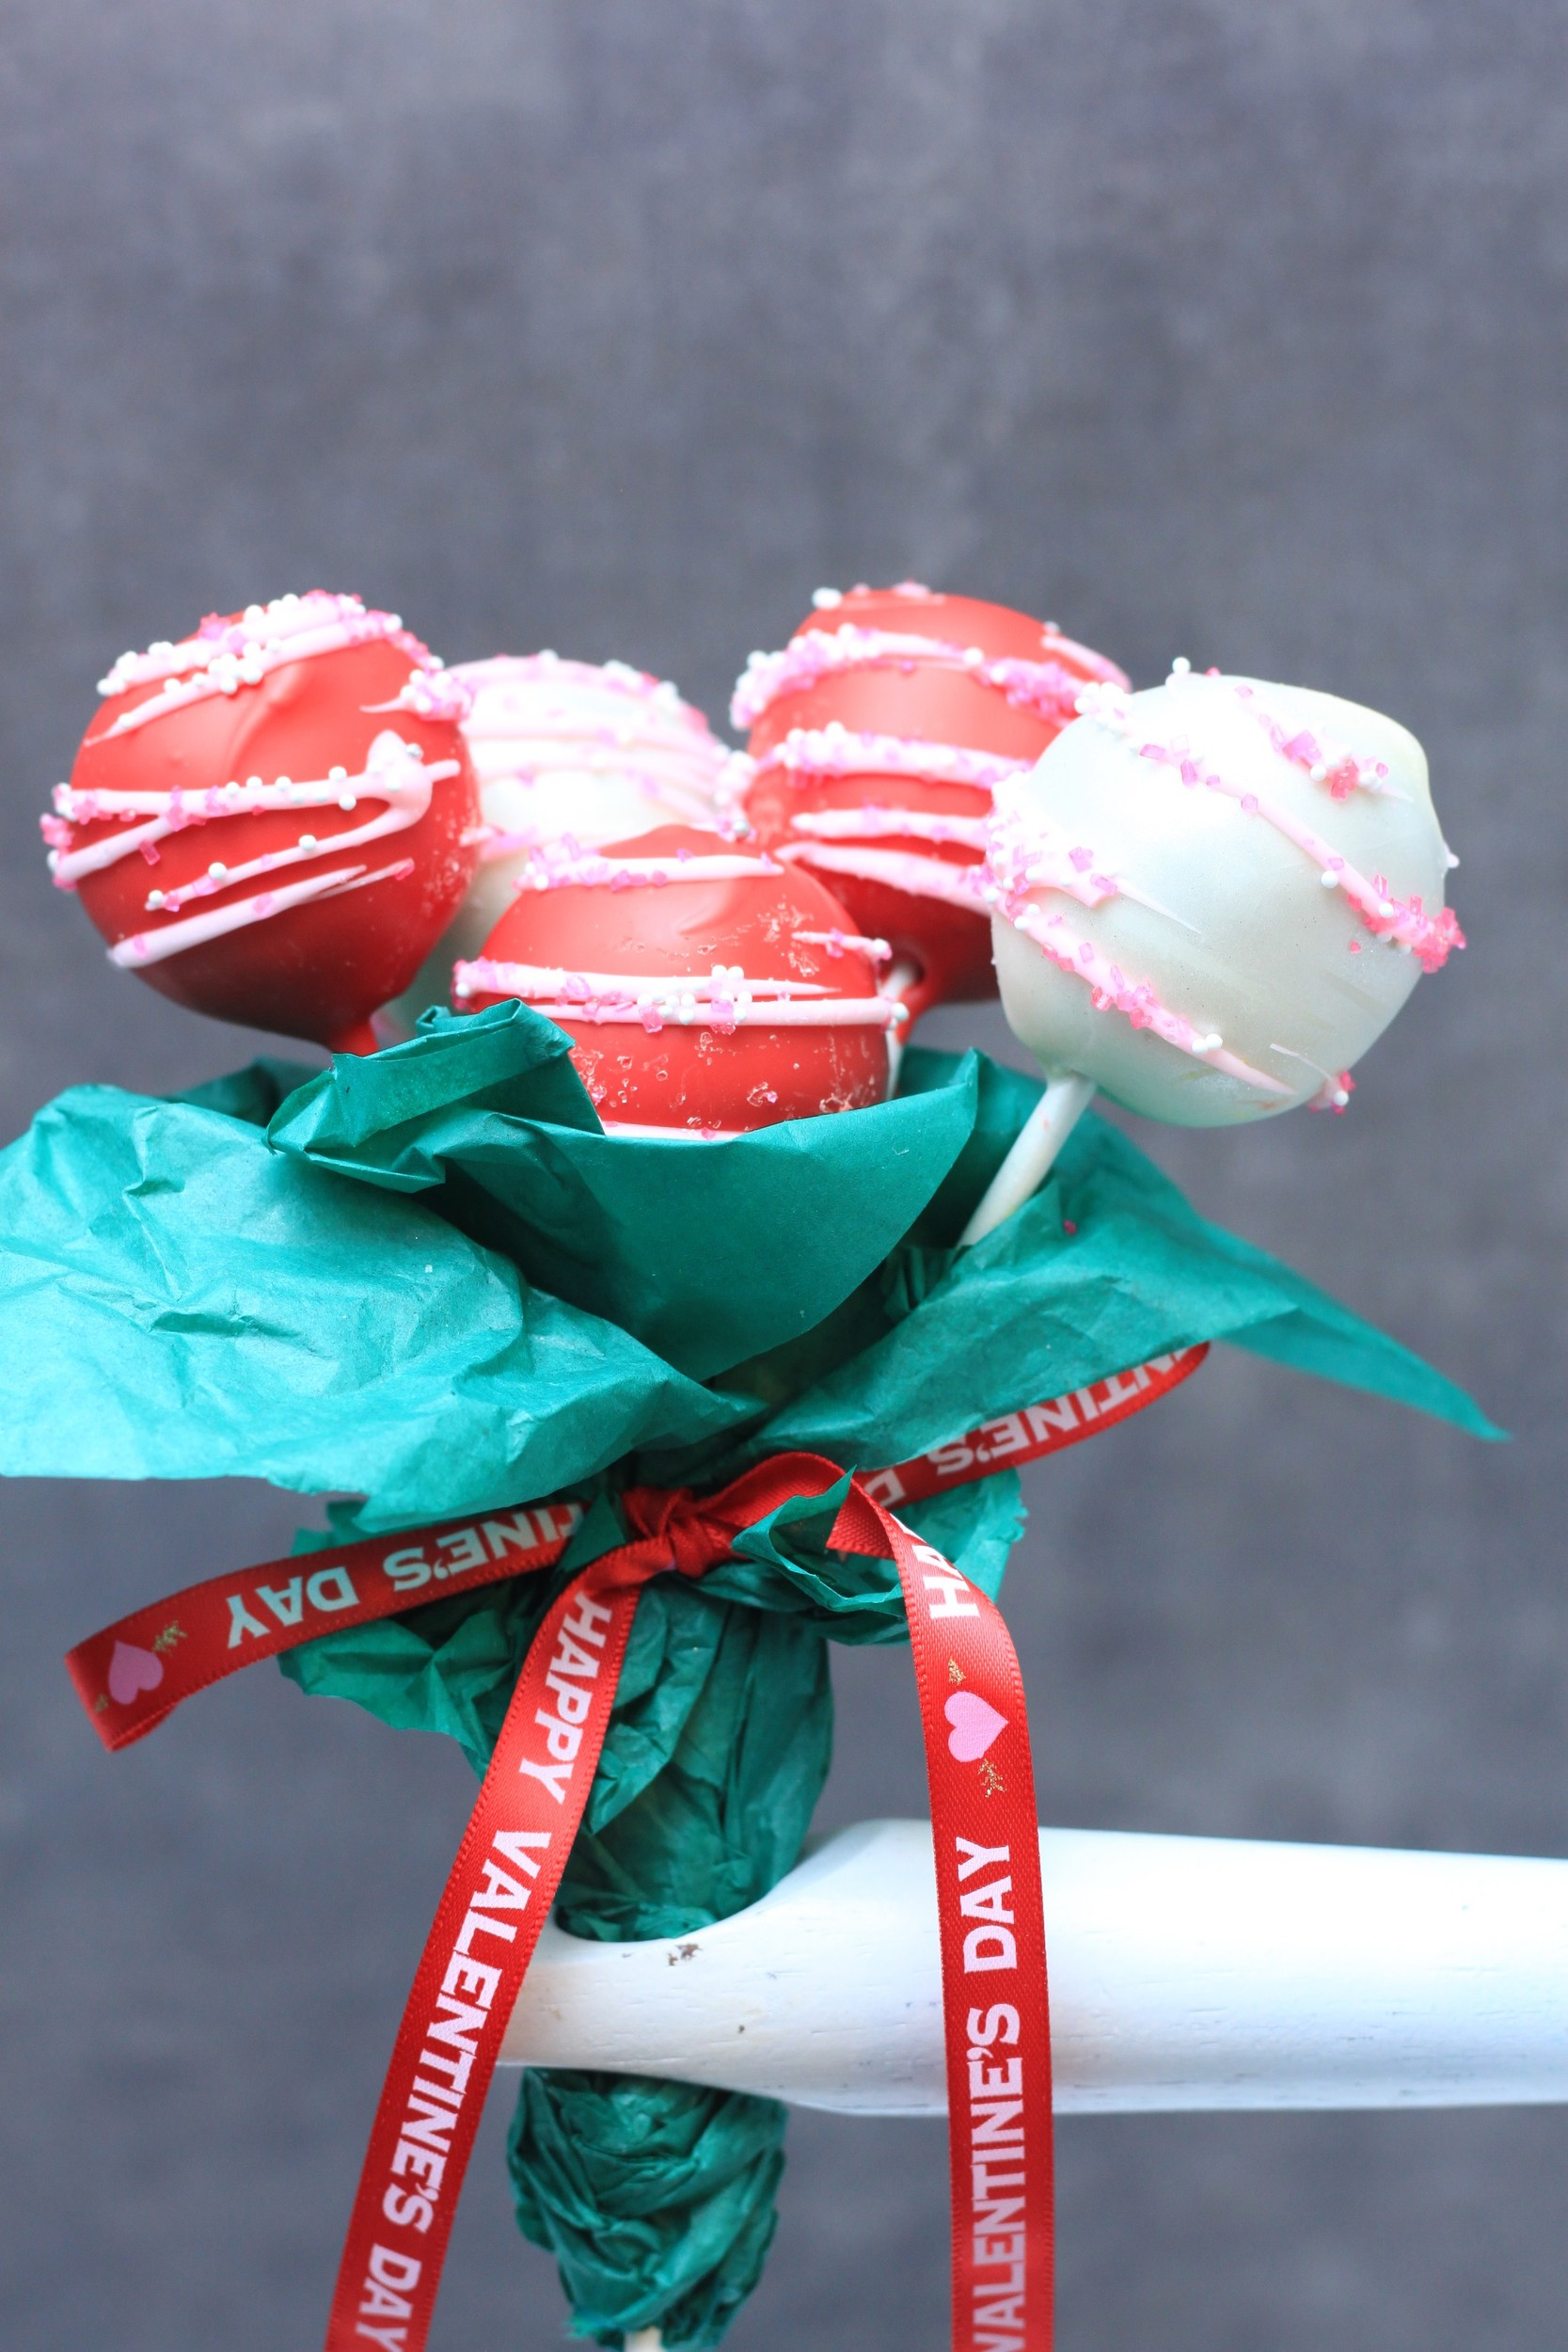 Bouquets of cake pops will be one of the Valentine's Day items featured in the bakery.